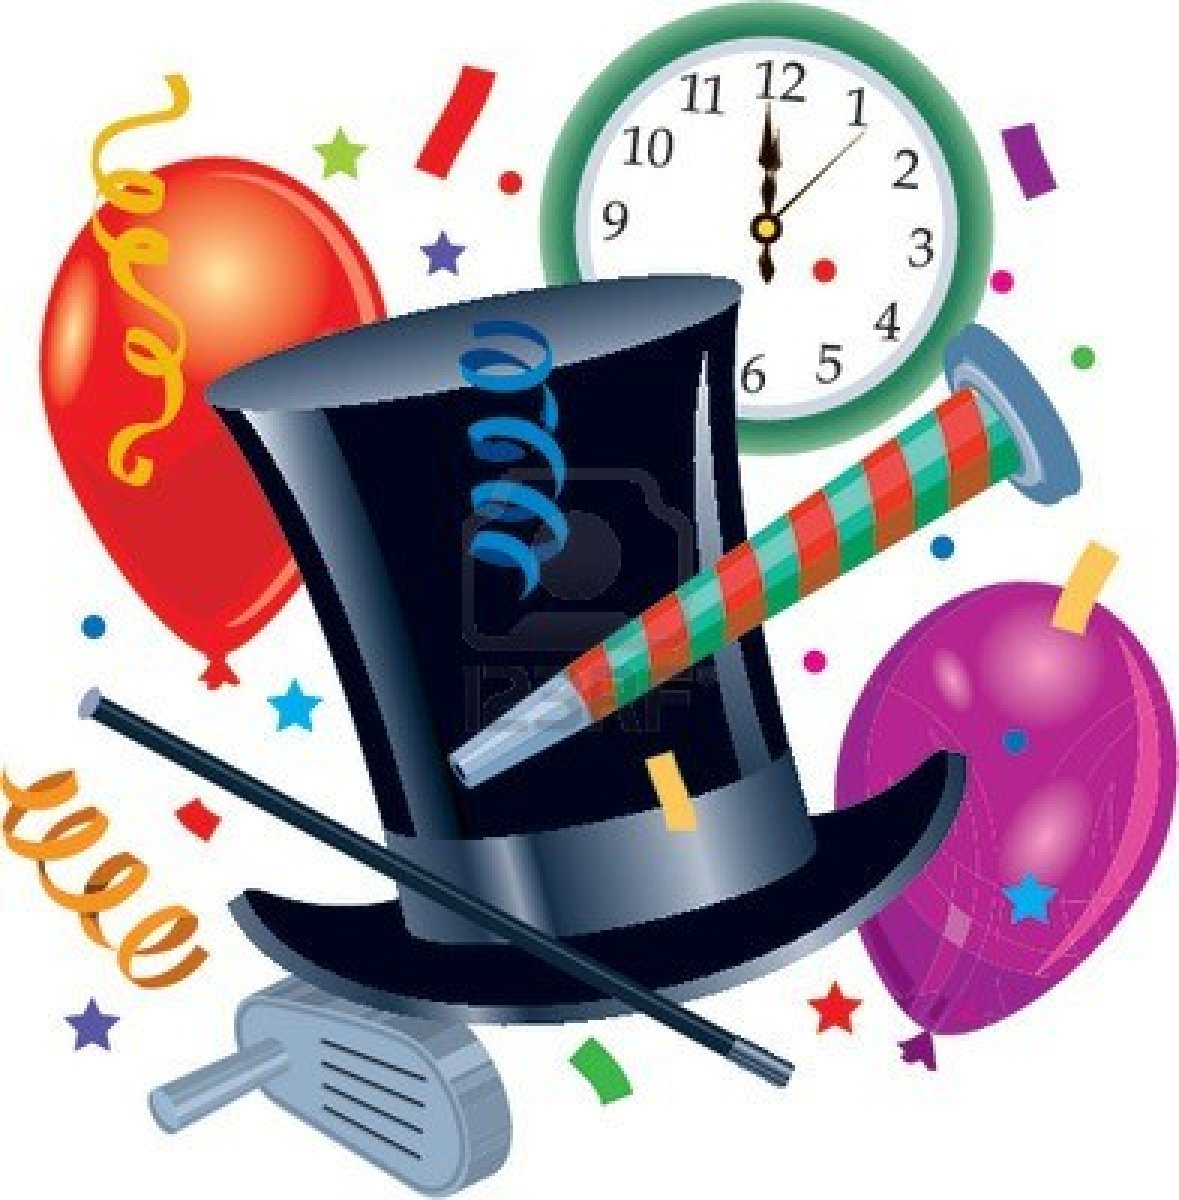 hight resolution of 1179x1200 new years eve new year clip art happy new year 2018 pictures